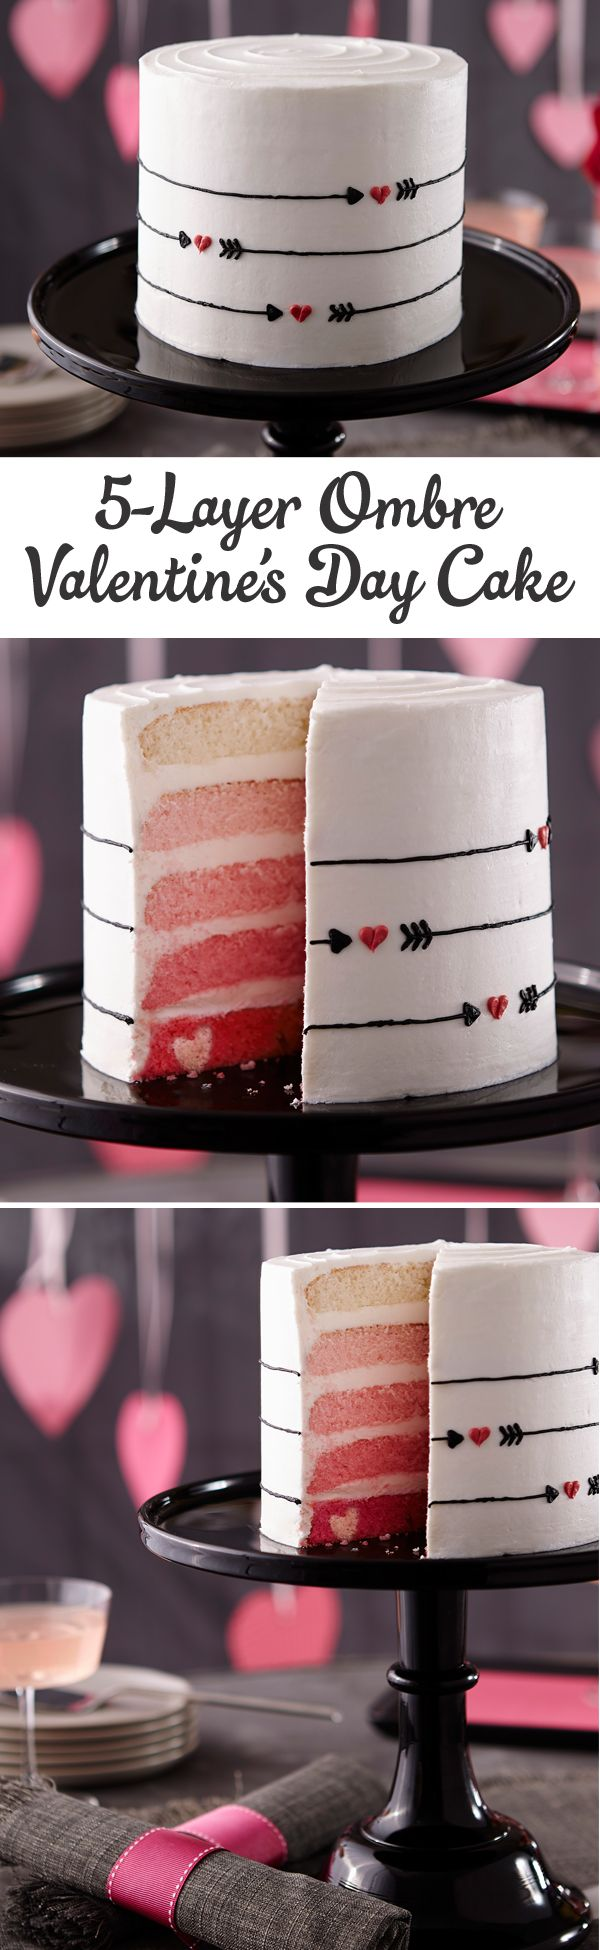 Valentine's Day 5-Layer Ombre Cake how-to from @michaelsstores